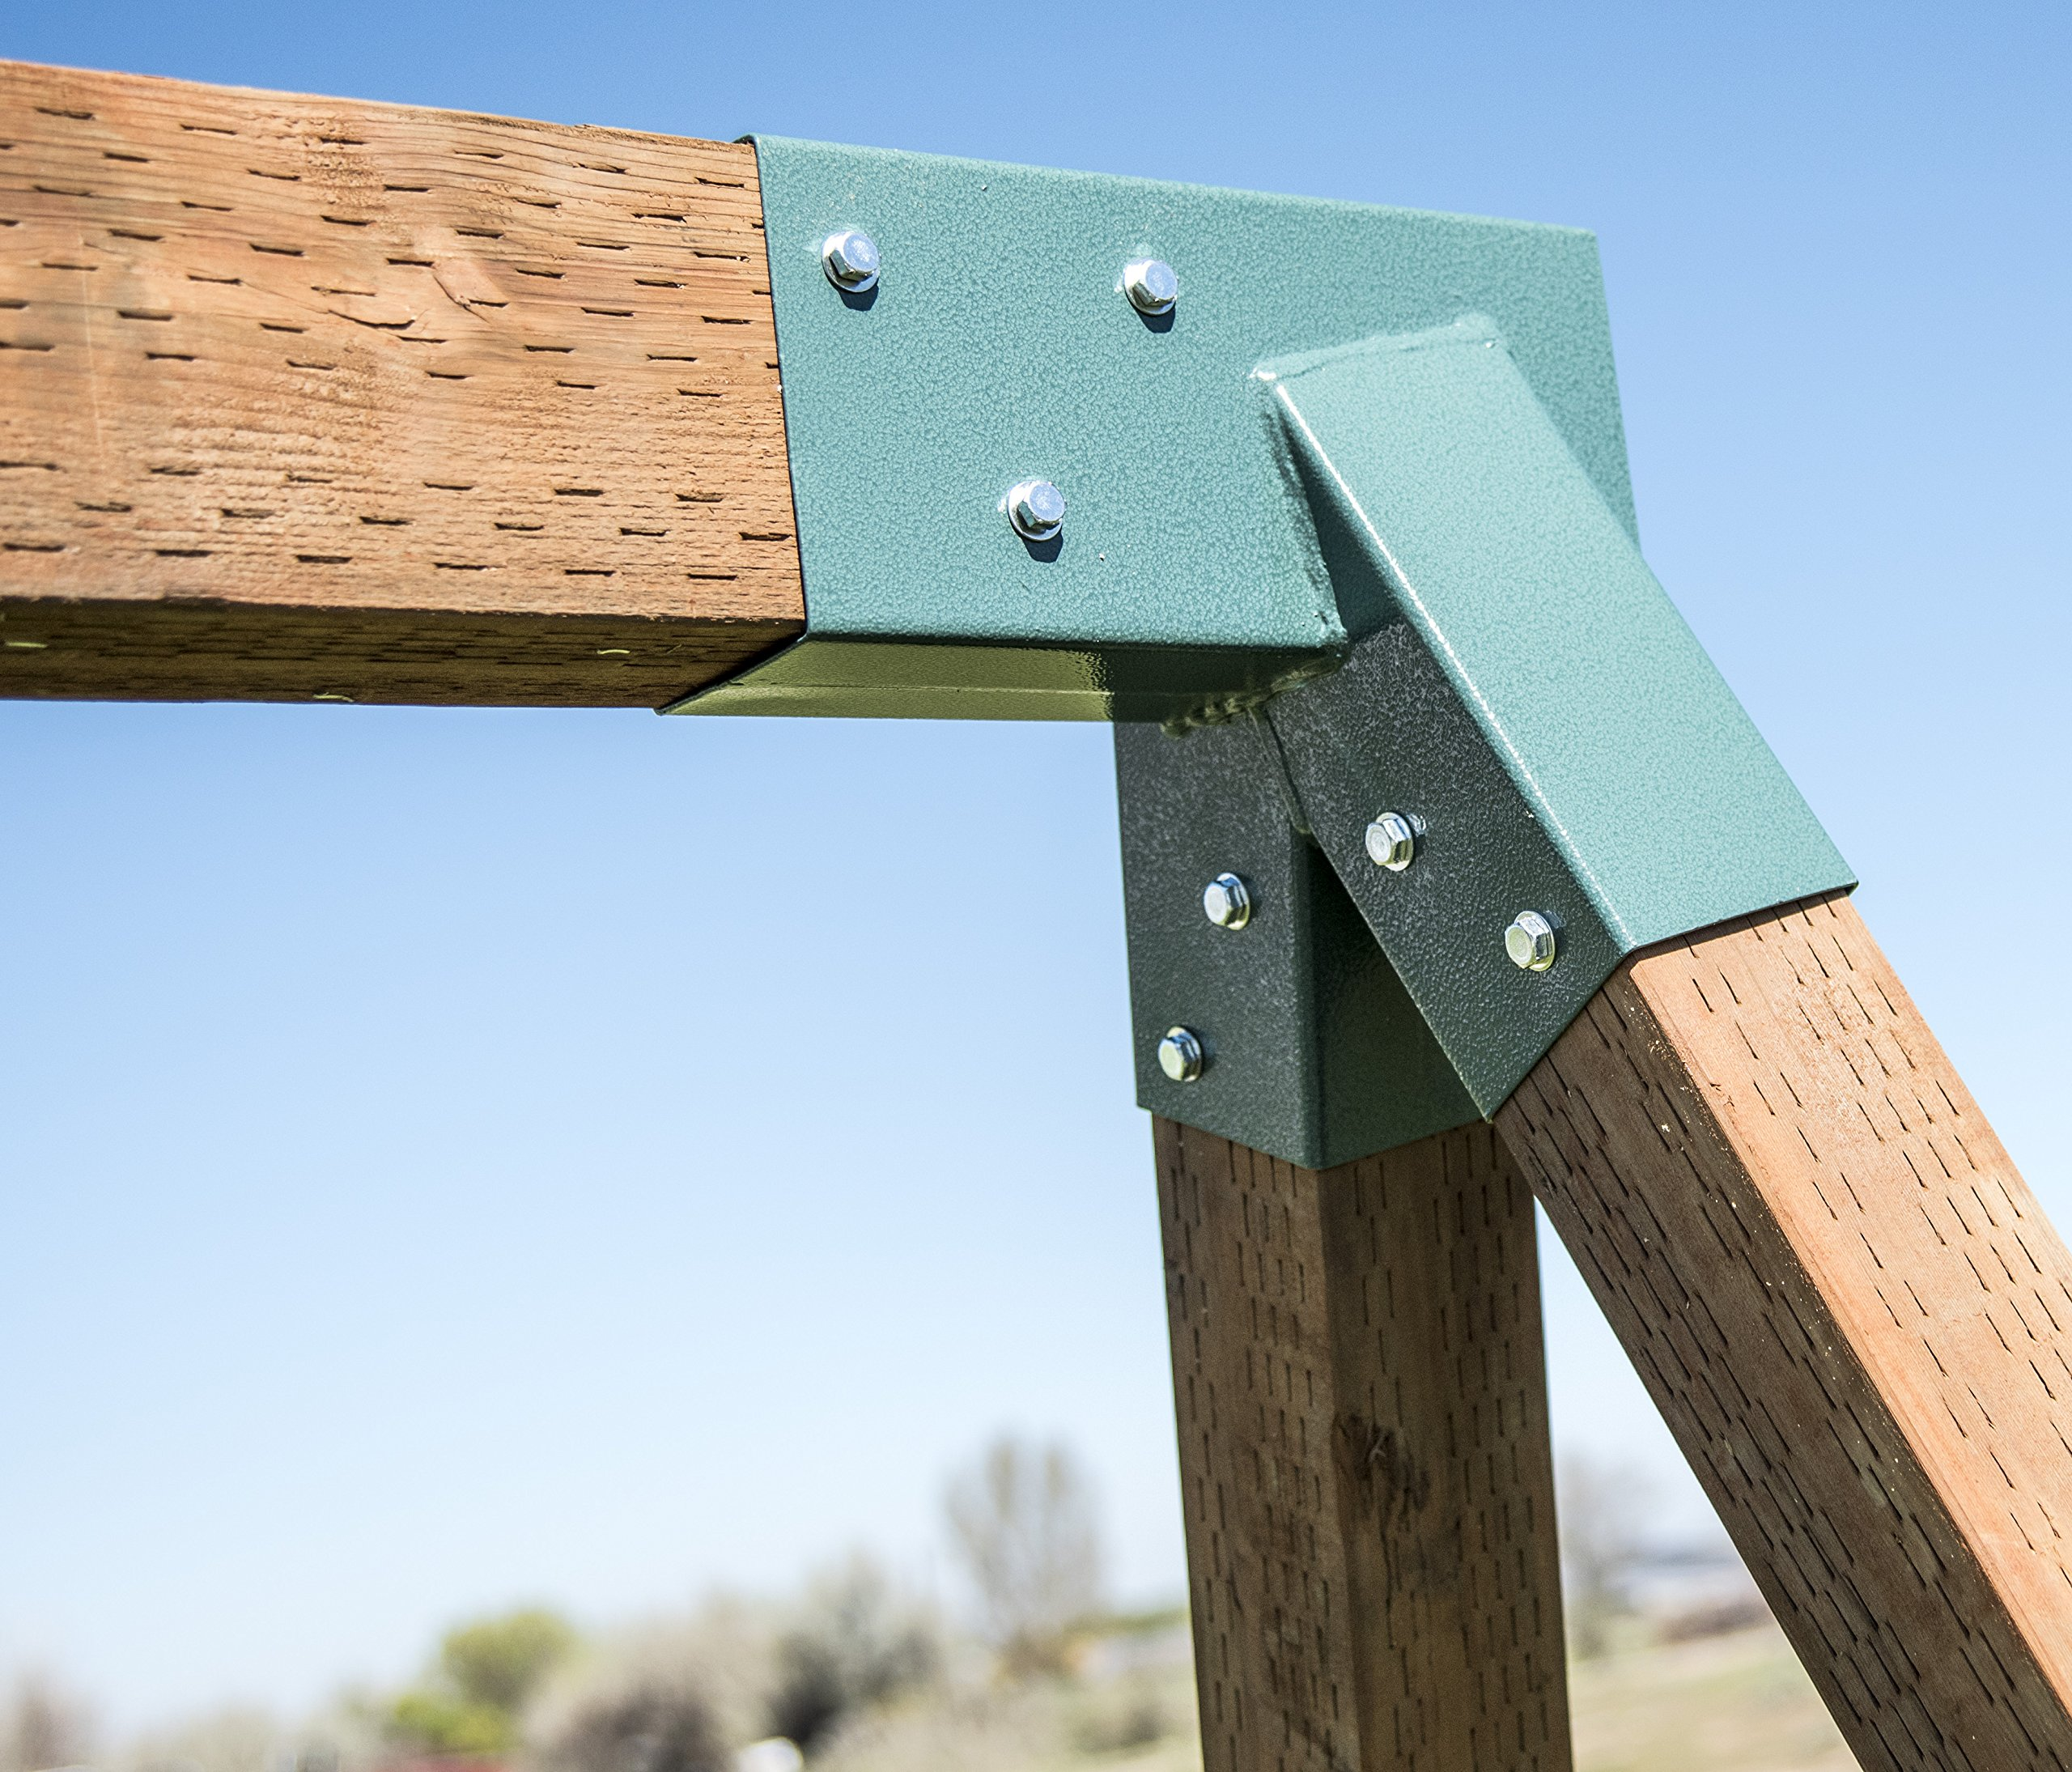 Squirrel Products A Frame Swing Set Bracket For 2 4x4 Legs 1